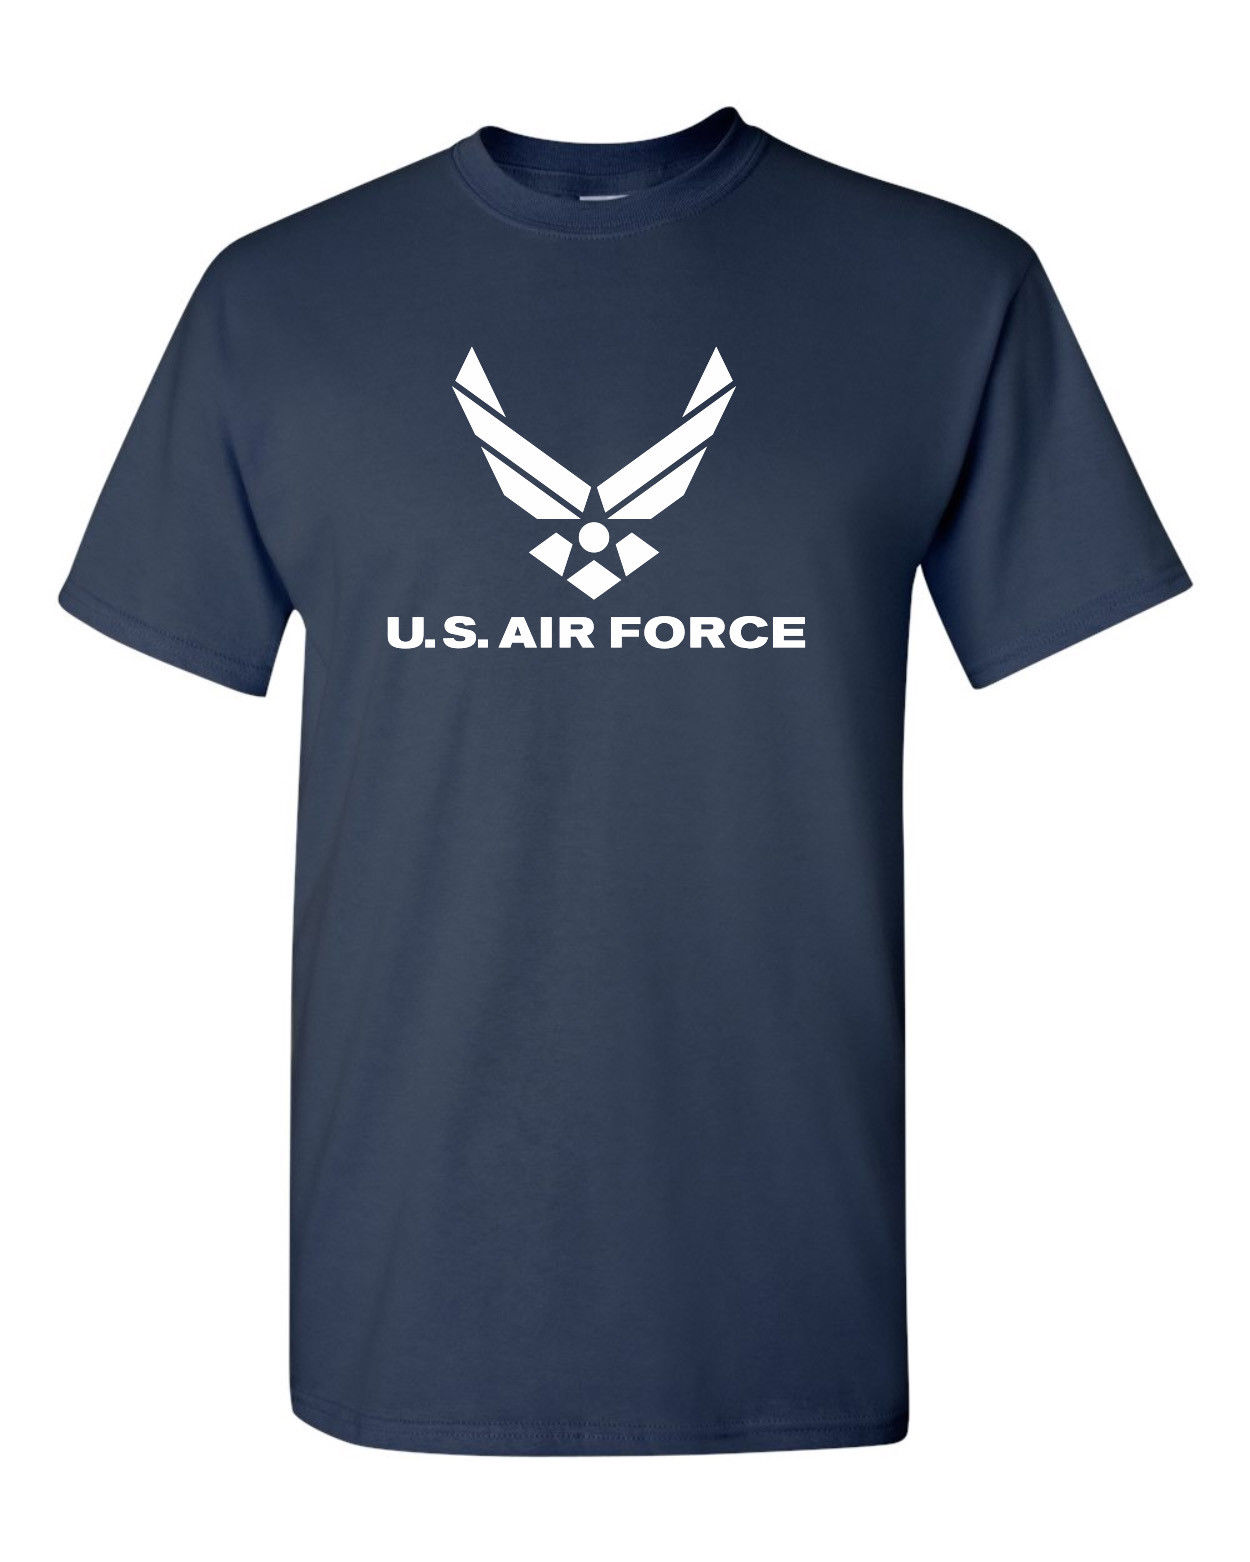 2019 Fashion Cotton T-<font><b>shirt</b></font> US Air Force Logo American Military <font><b>USAF</b></font> Men's Tee <font><b>Shirt</b></font> 1659 image